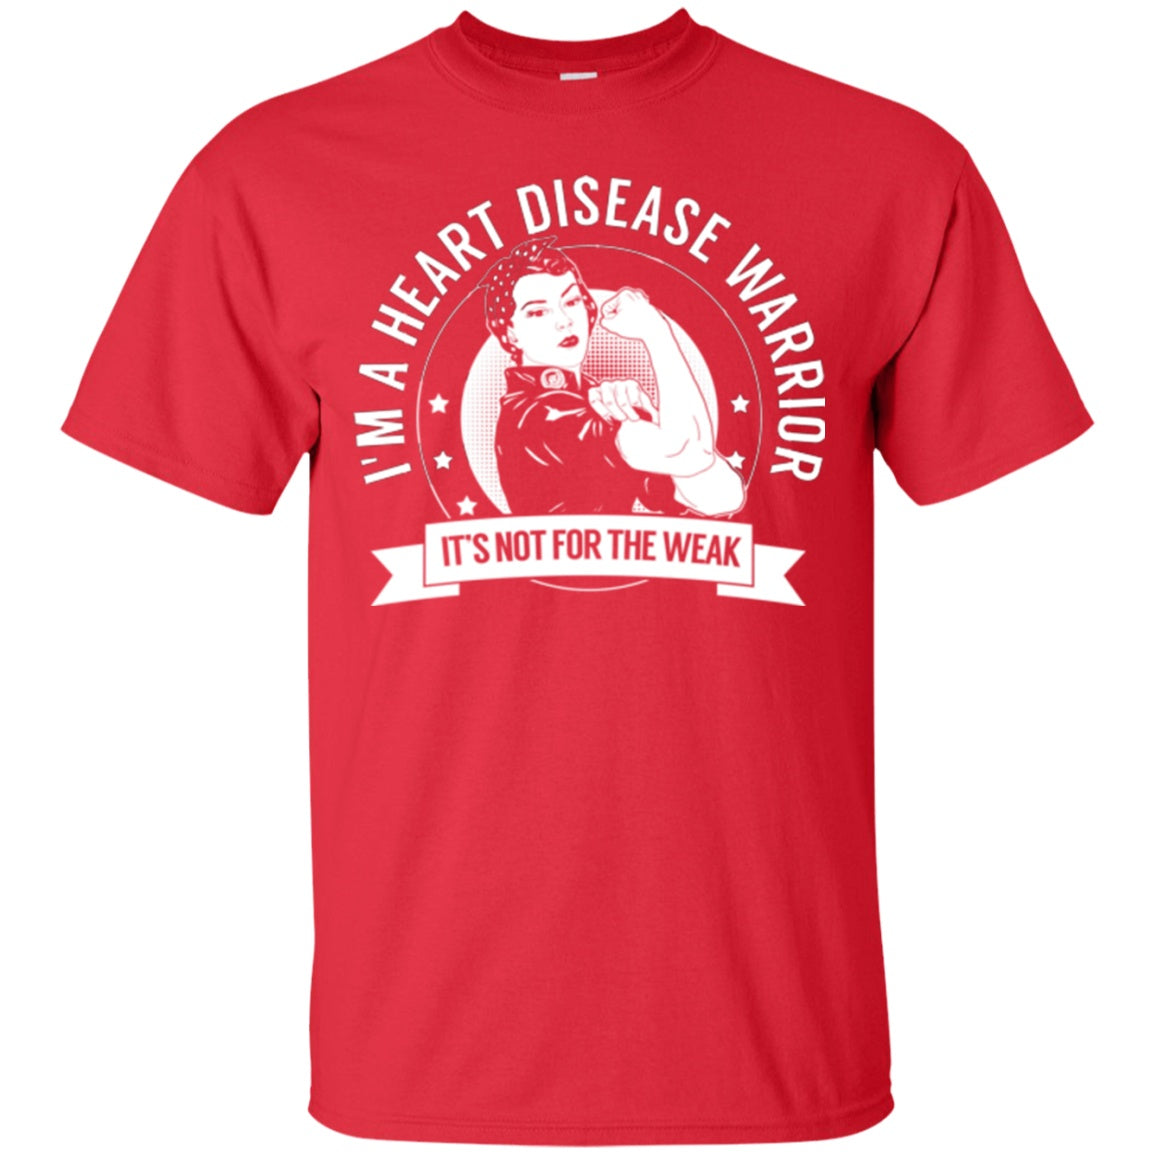 Heart Disease Warrior Not For The Weak Cotton T-Shirt - The Unchargeables